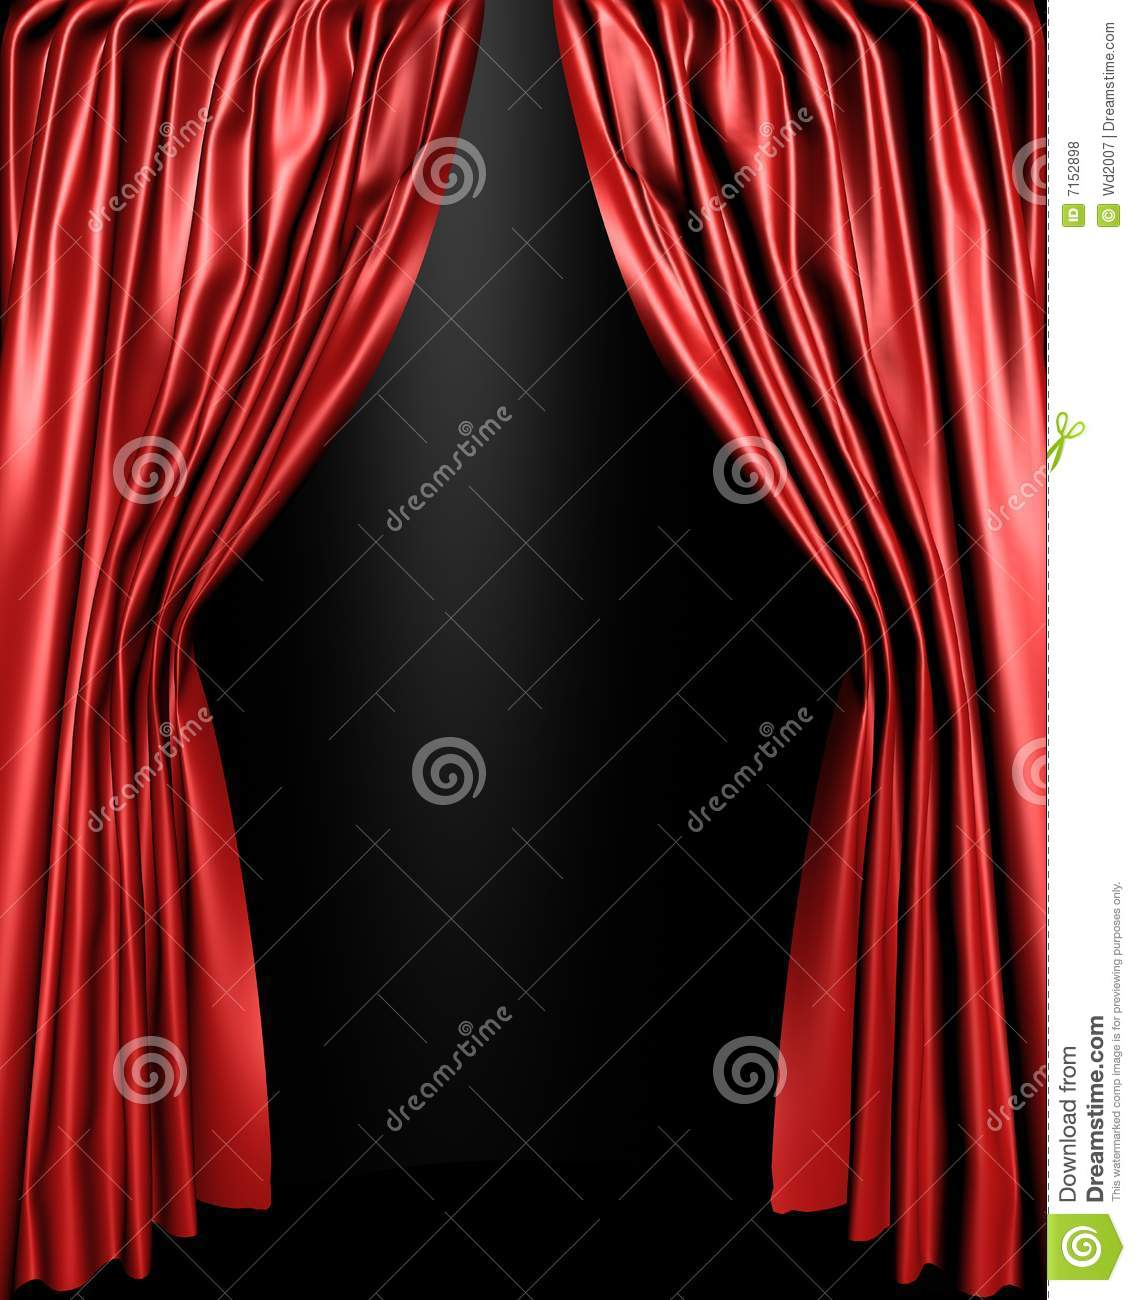 Open stage curtains - Curtain Open Silk Stage